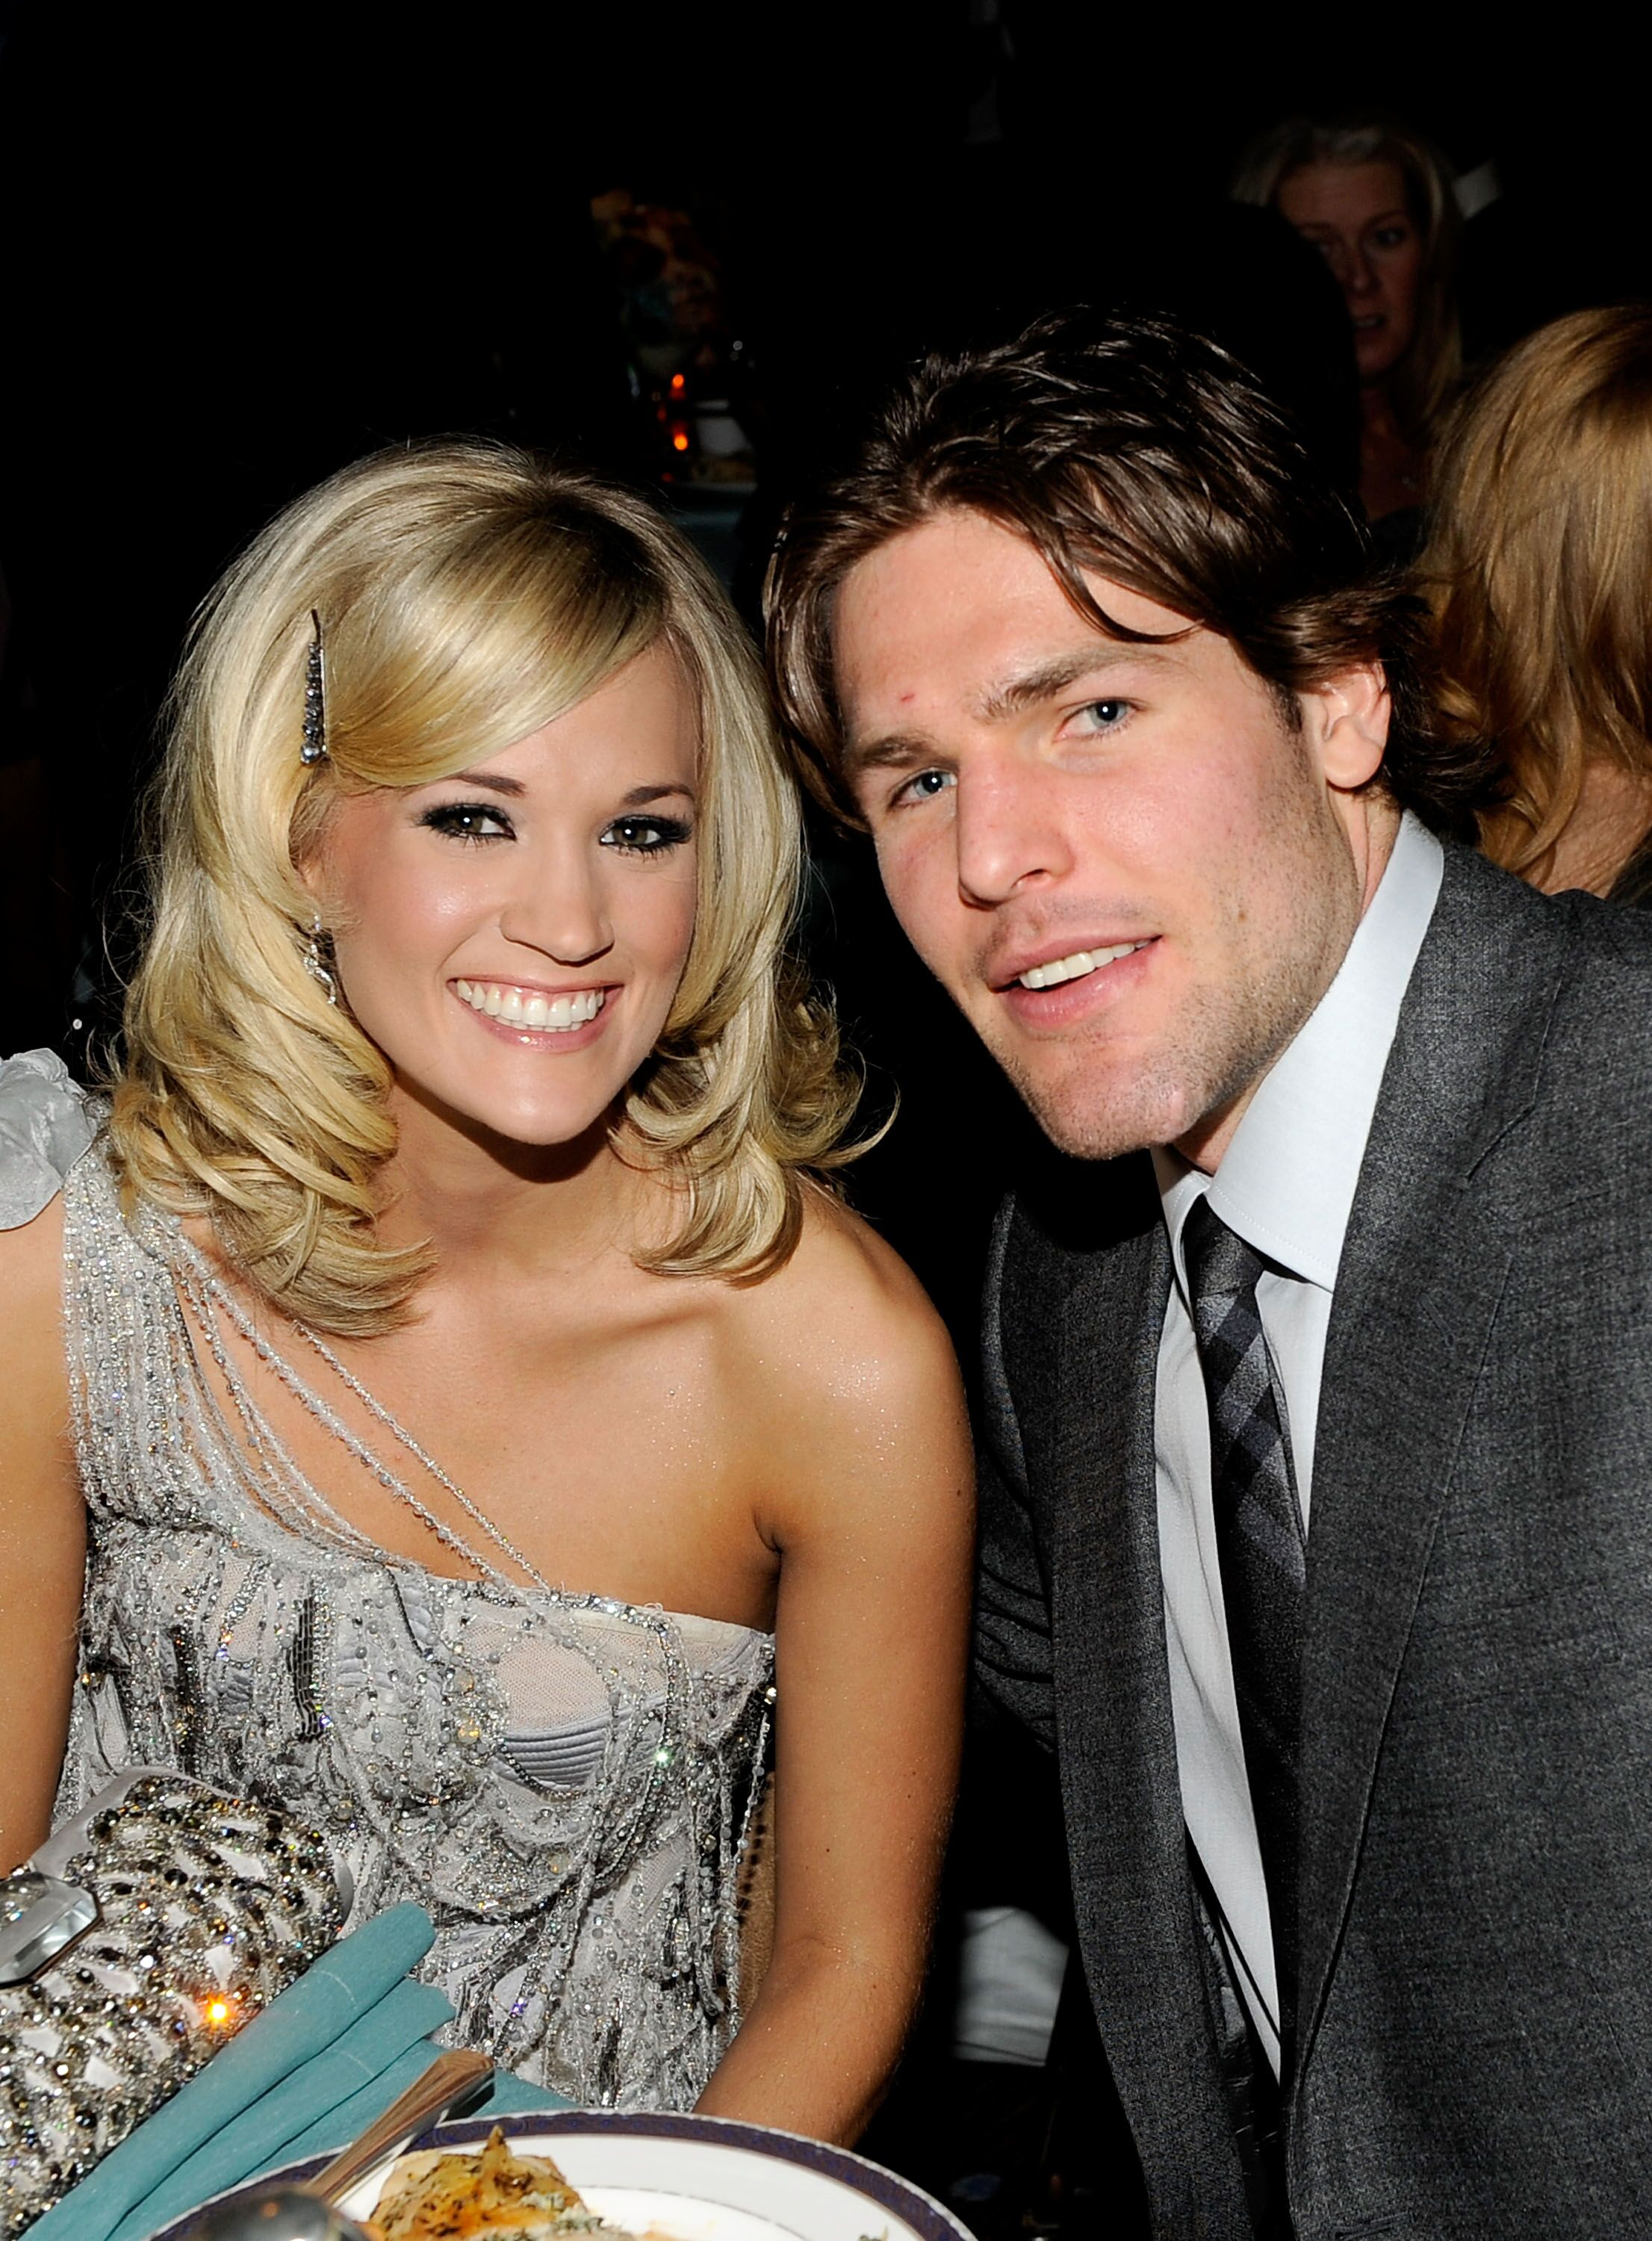 Carrie Underwood and Mike Fisher attend the Grammy Awards, 2010. | Source: Getty Images